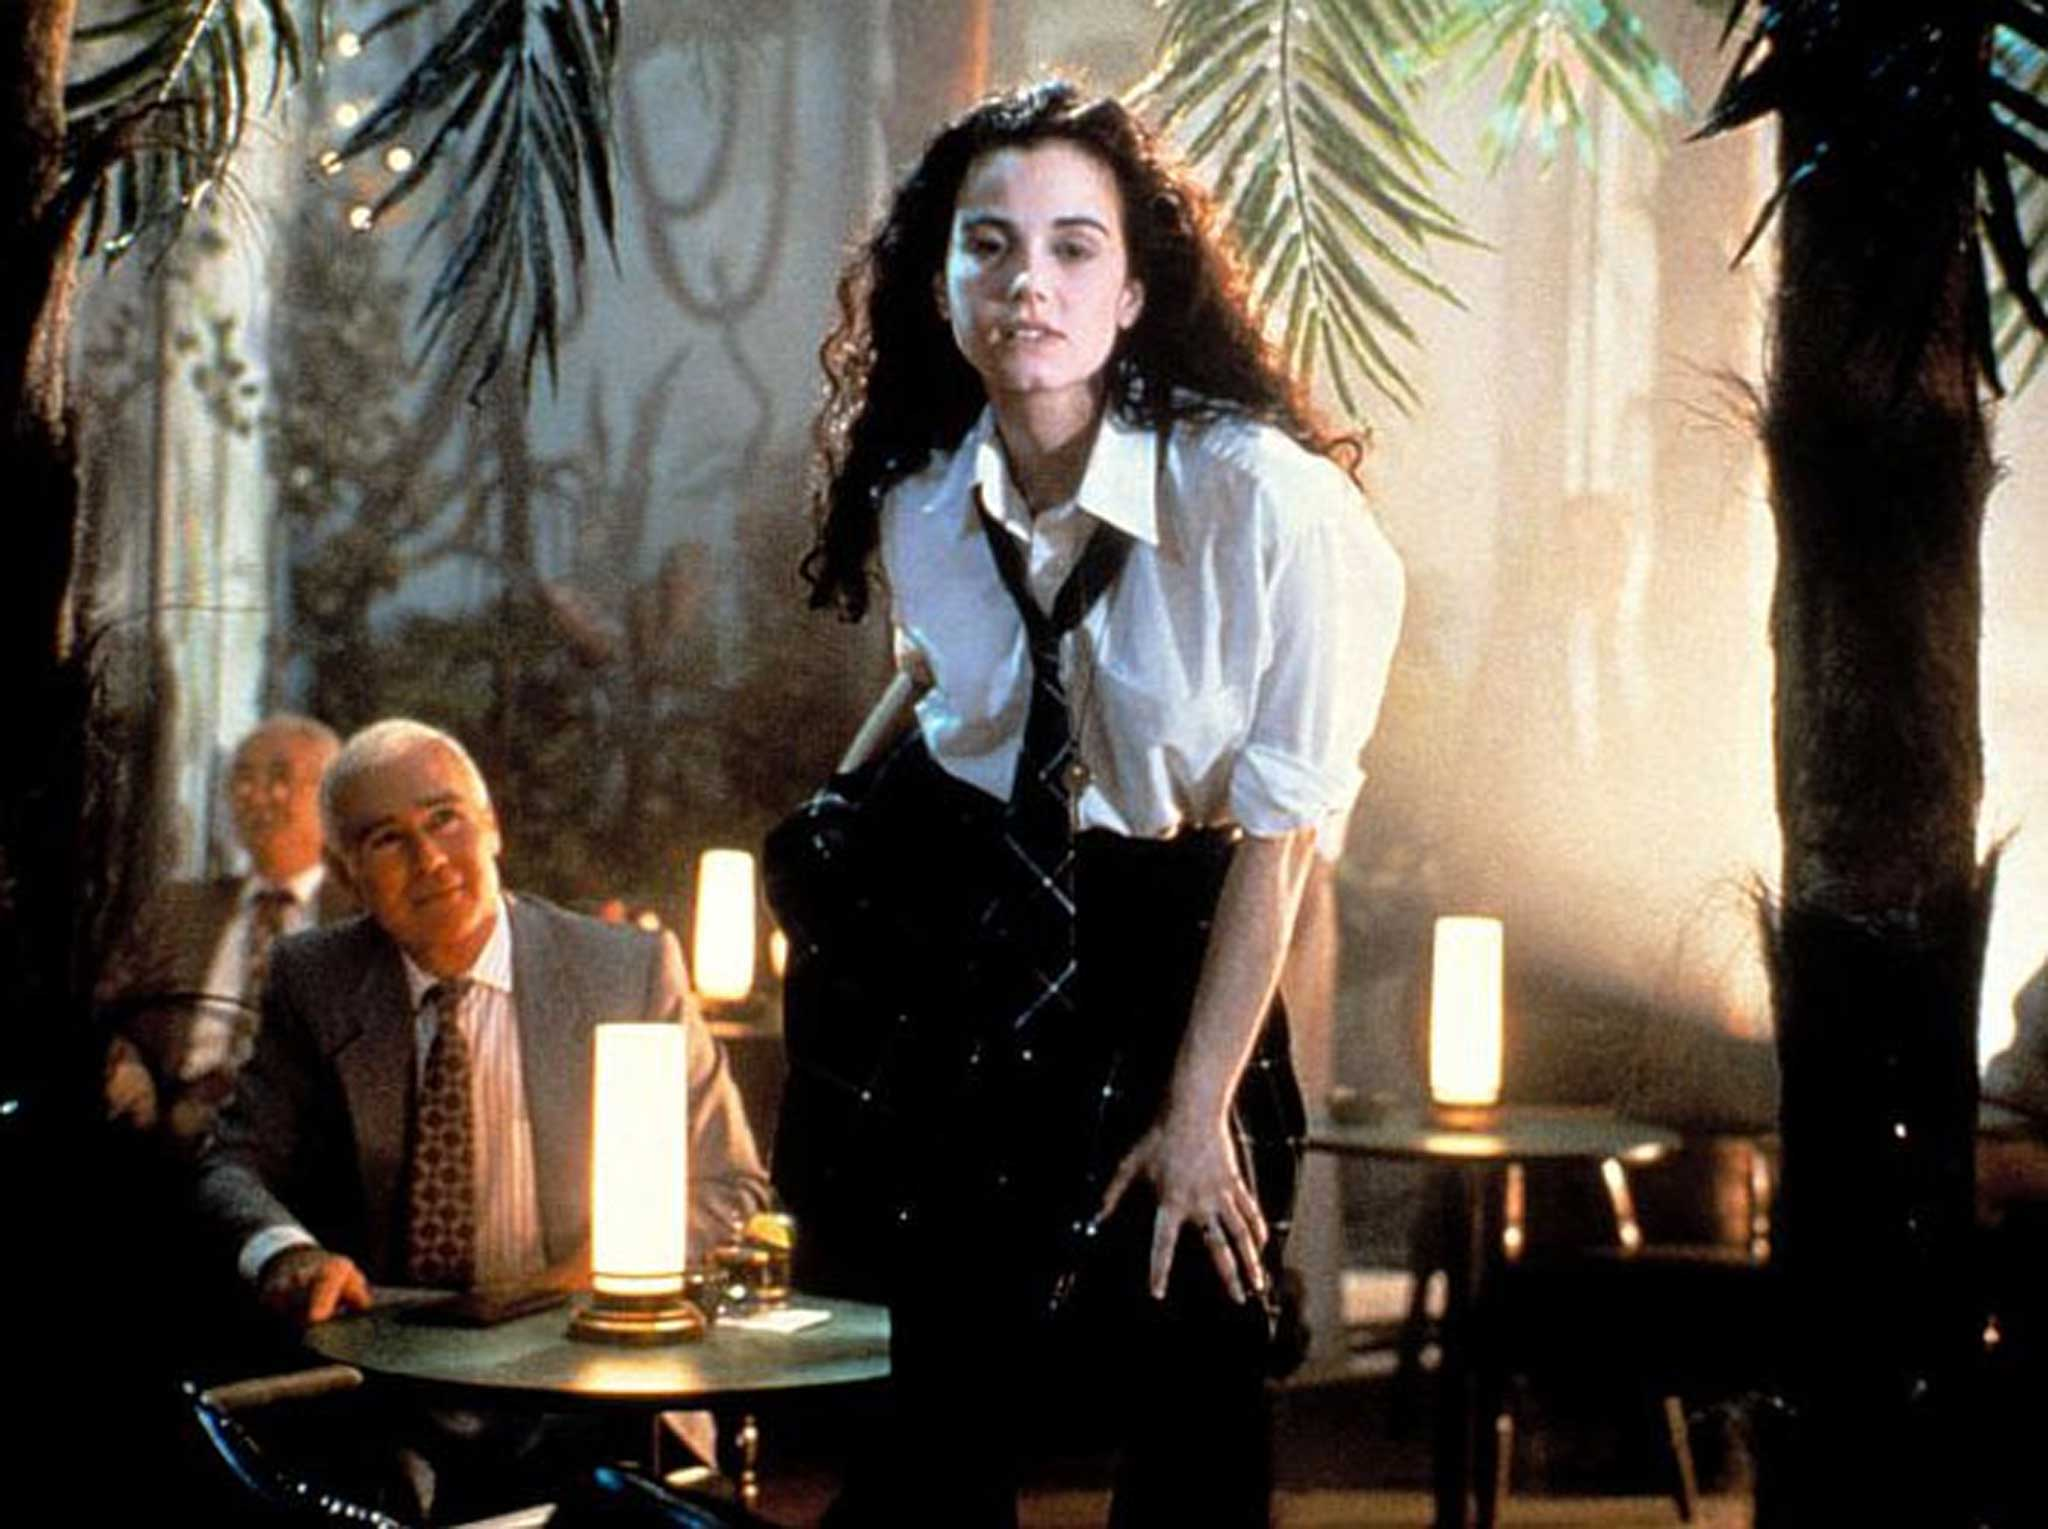 a review of exotica a movie by atom egoyan Exotica (1994) is an erotic drama, romance movie starring david hemblen and calvin green it is directed by atom egoyan in the upscale toronto strip club exotica, dancer christina is visited nightly by the obsessive francis, a depressed tax auditor.